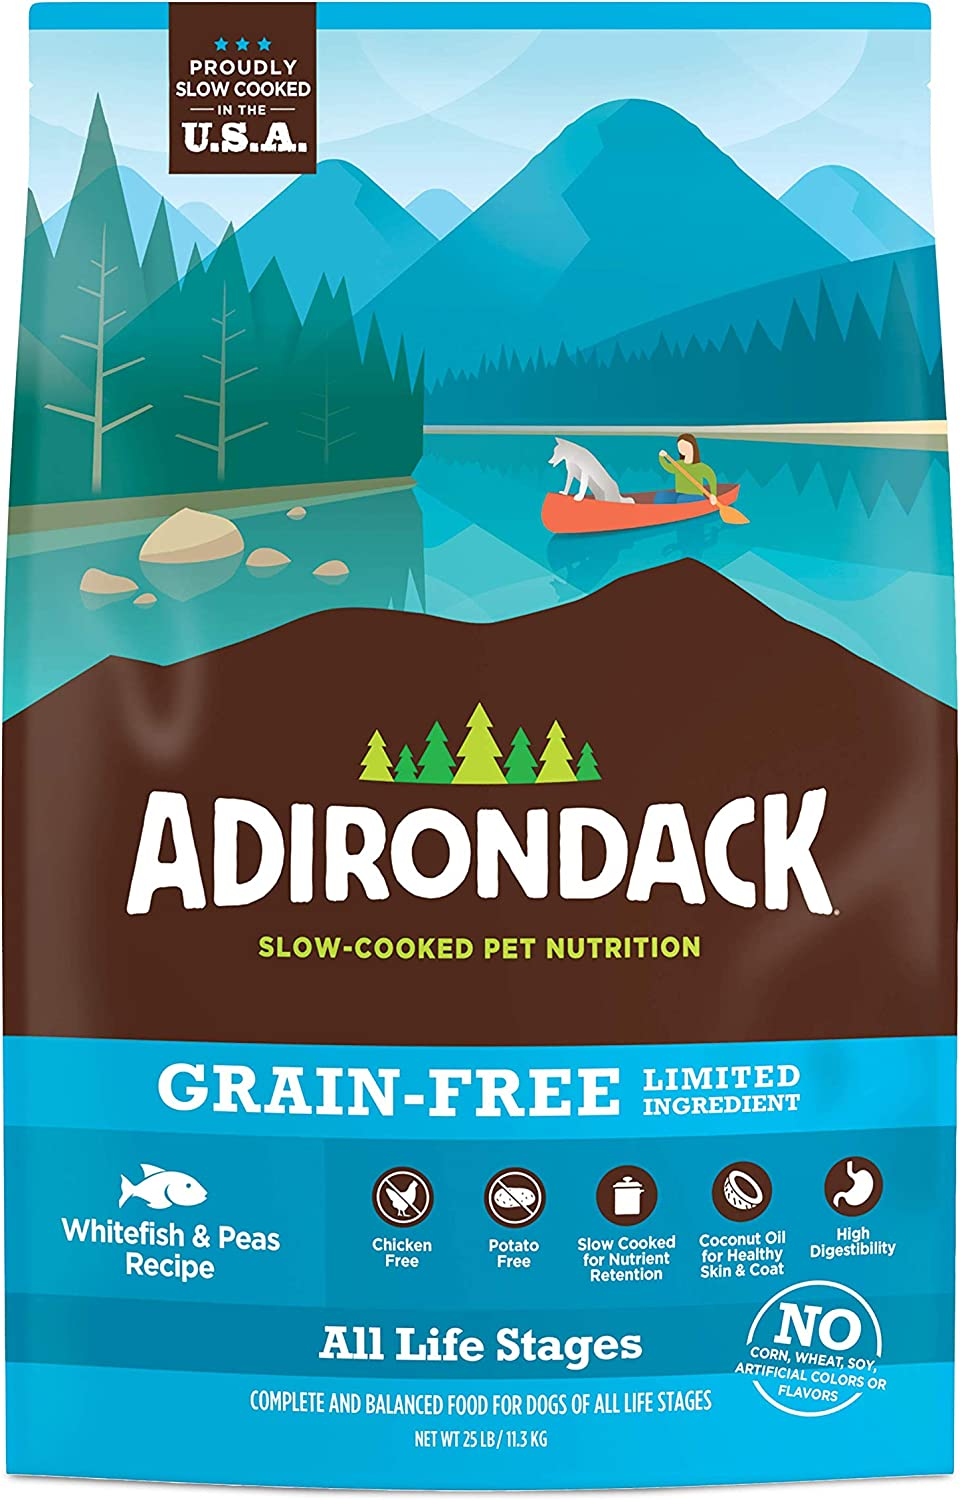 Adirondack Dog Food Made in USA [Limited Ingredient Grain Free Dog Food For All Life Stages], Turkey, Whitefish, Small Breed, and Weight Management Recipes